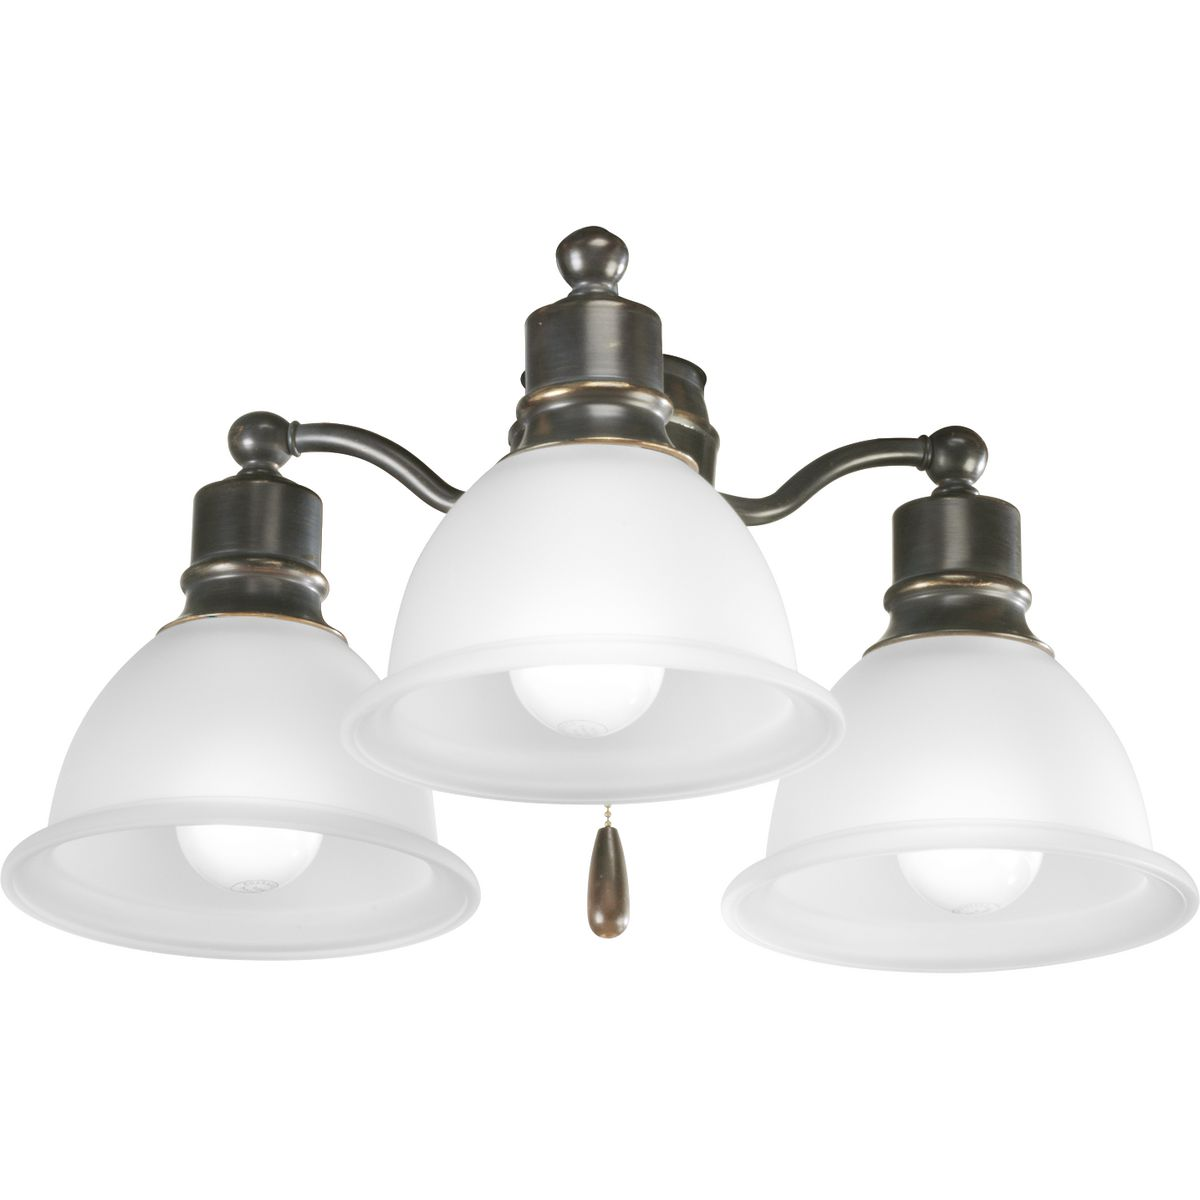 Madison Collection Three Light Ceiling Fan P2623